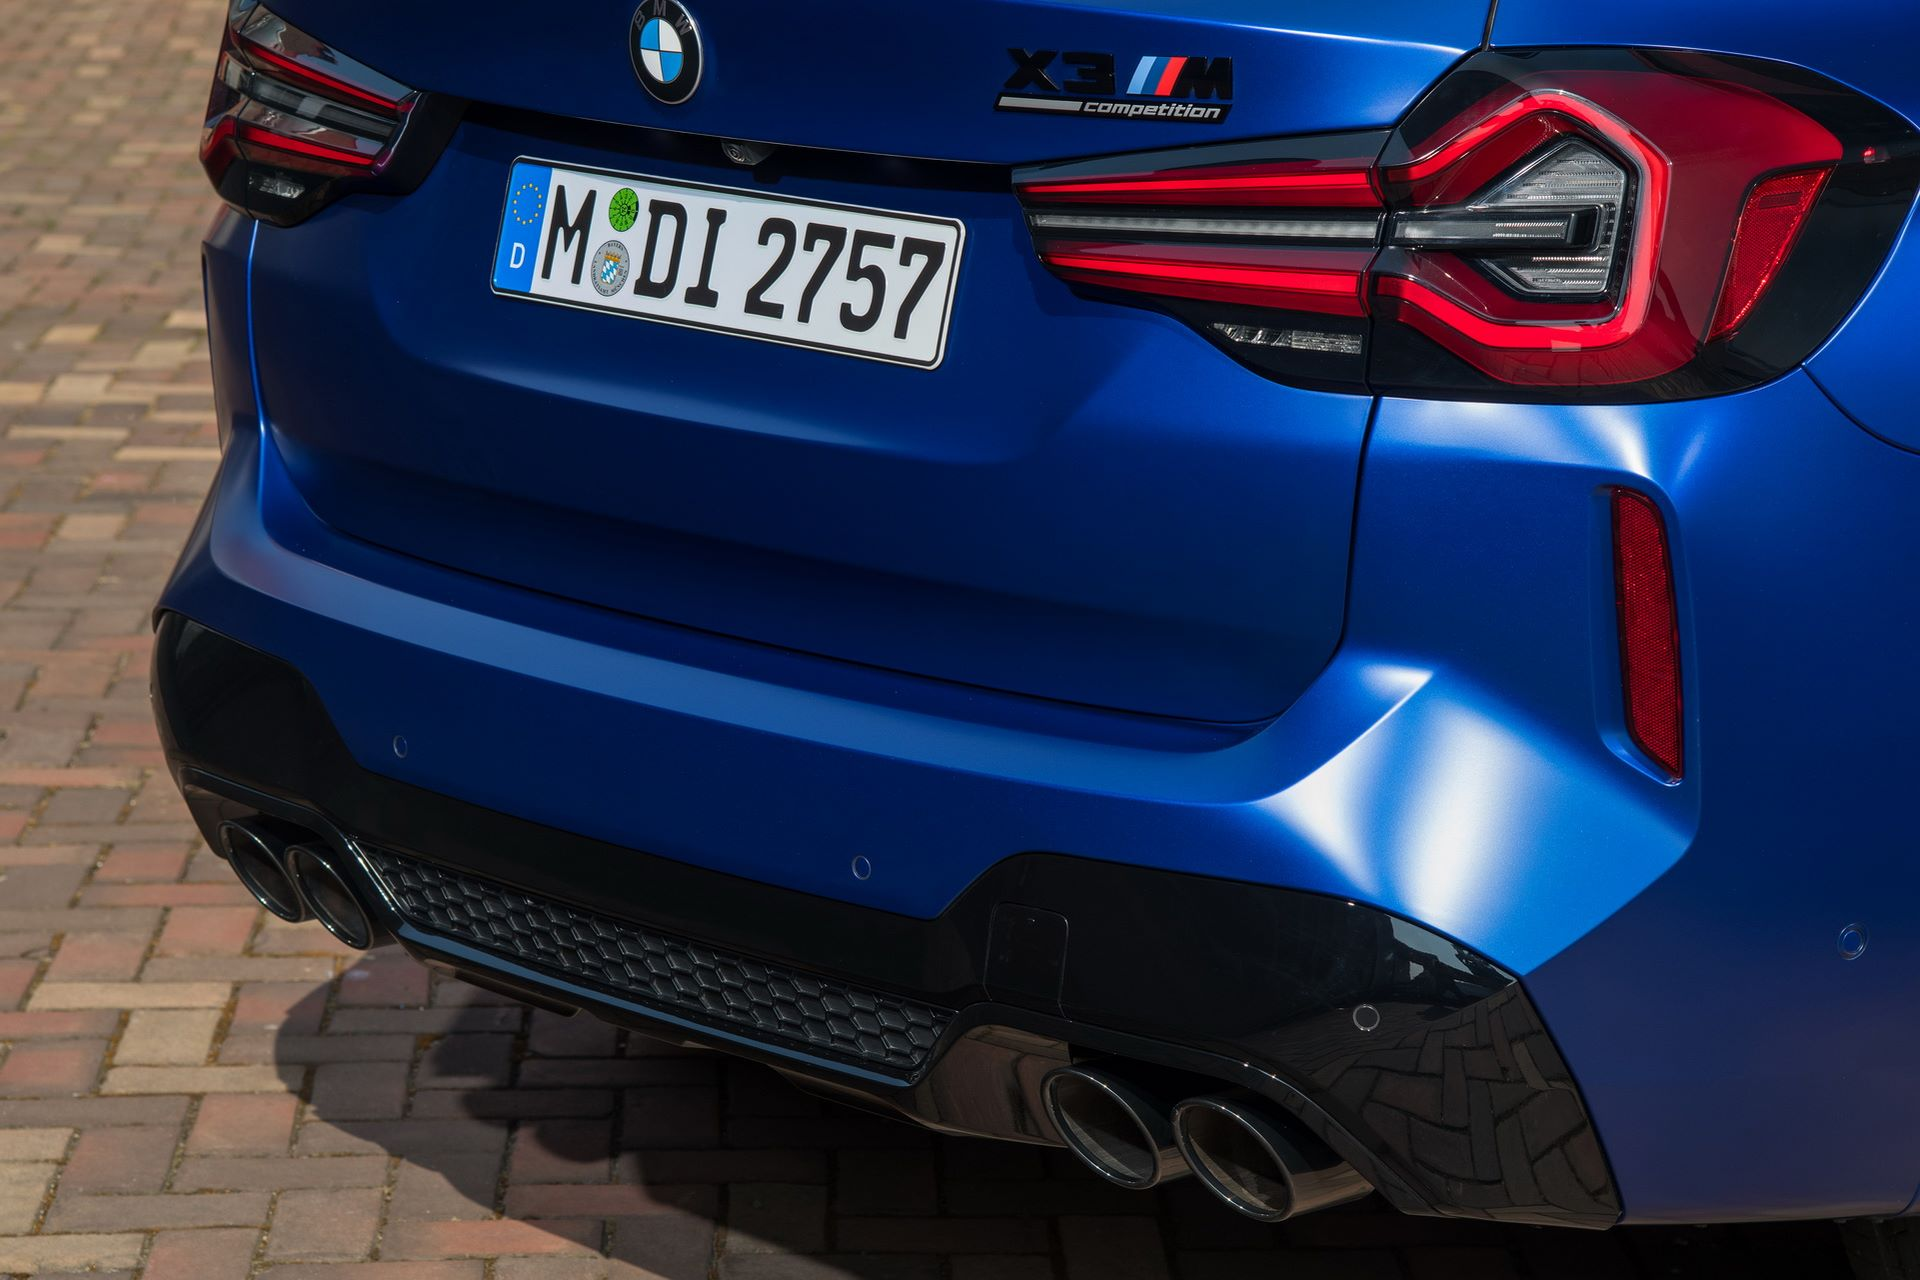 BMW-X3-M-X4-M-Competition-95